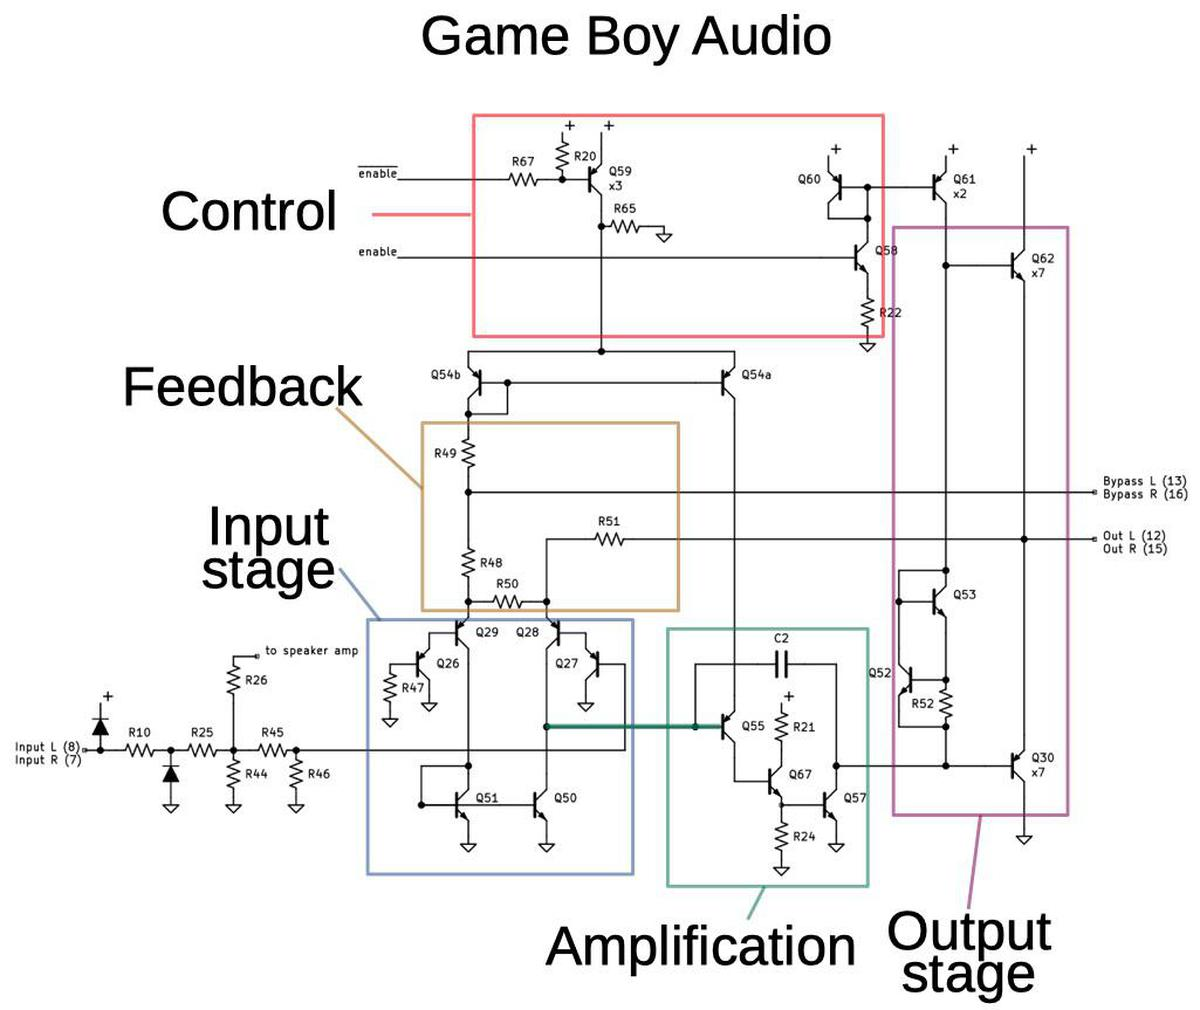 Schematic of the Game Boy headphone amplifier that I created by reverse-engineering the die.